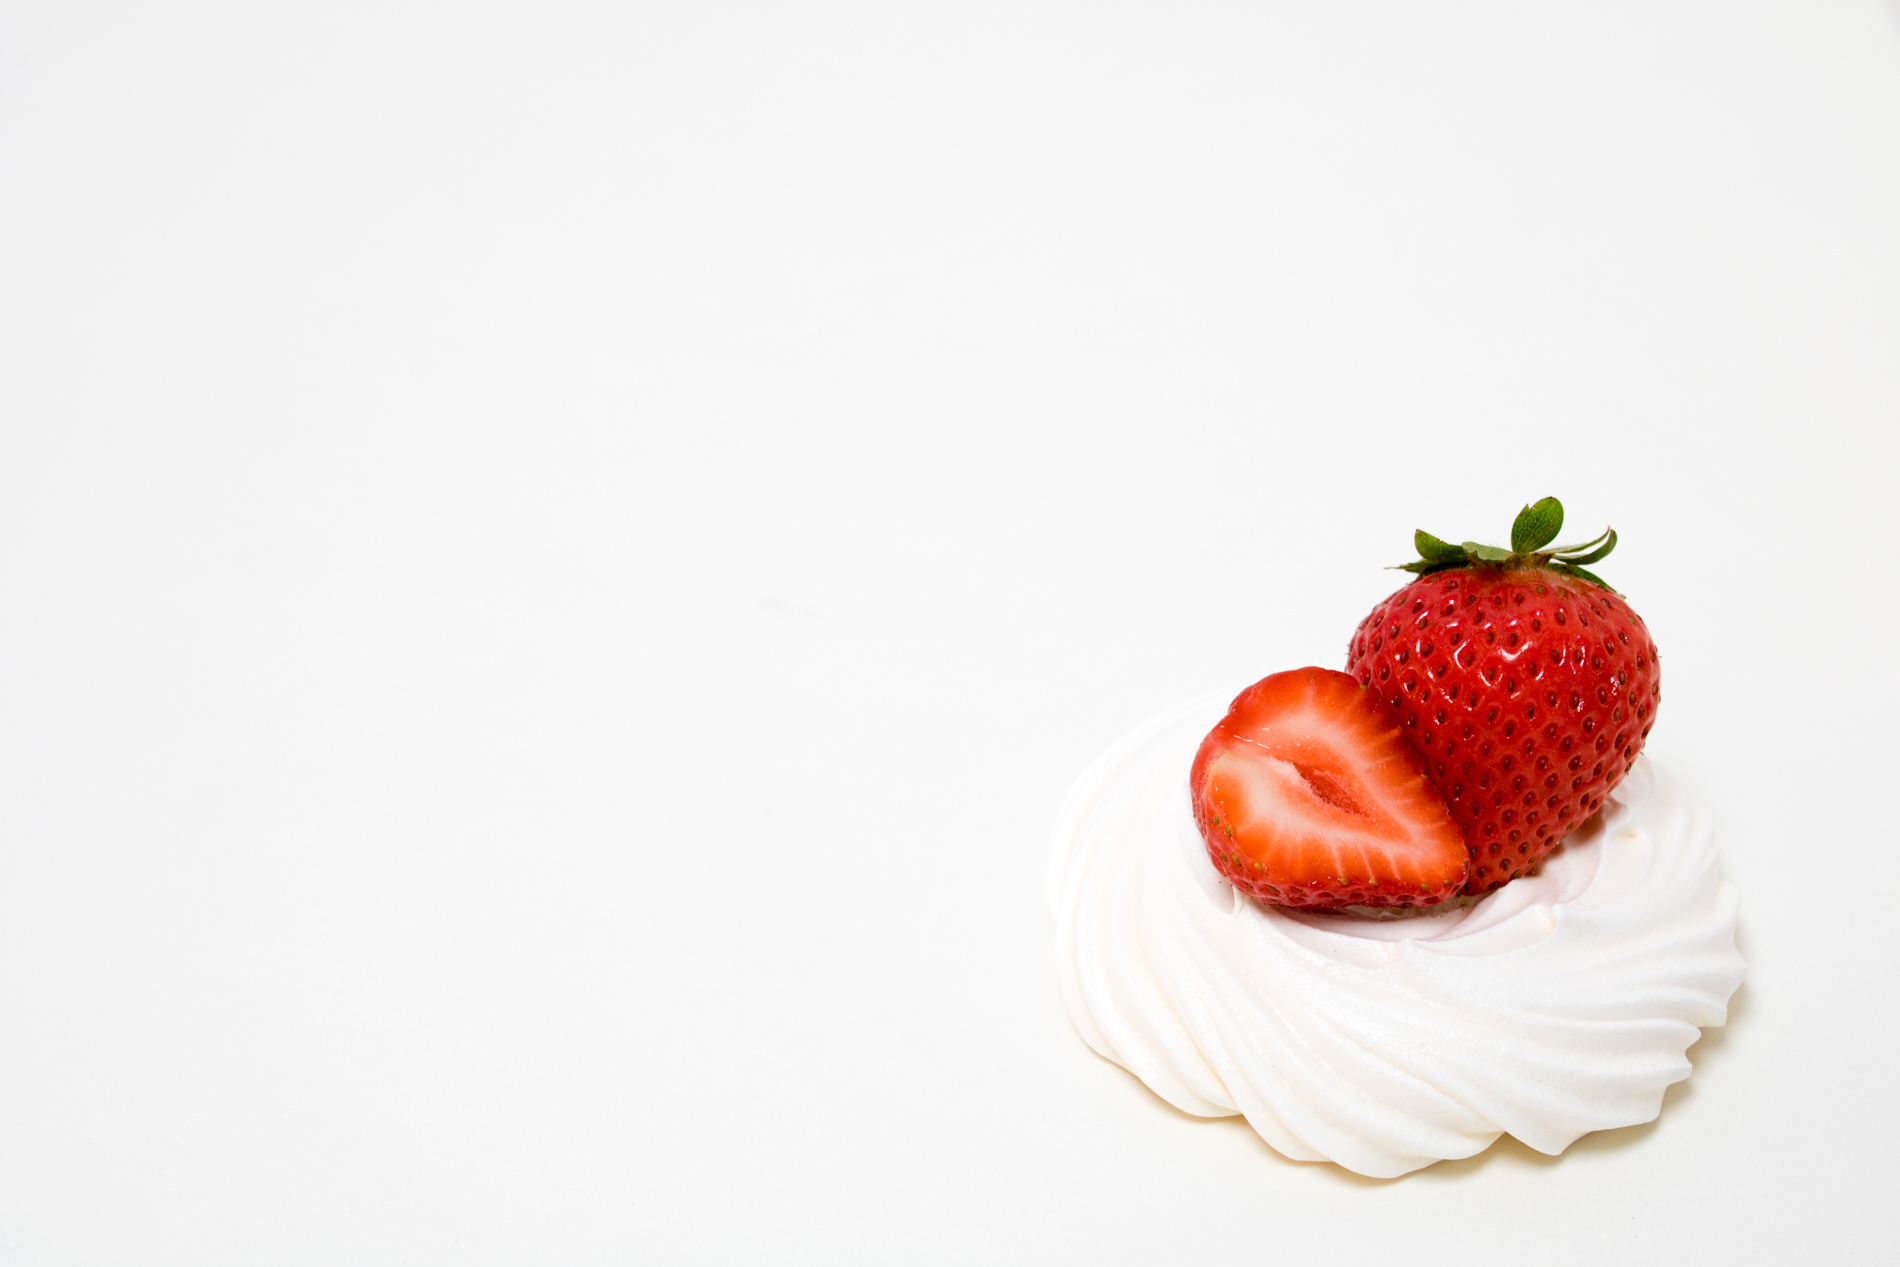 strawberries on whipped cream on a white background